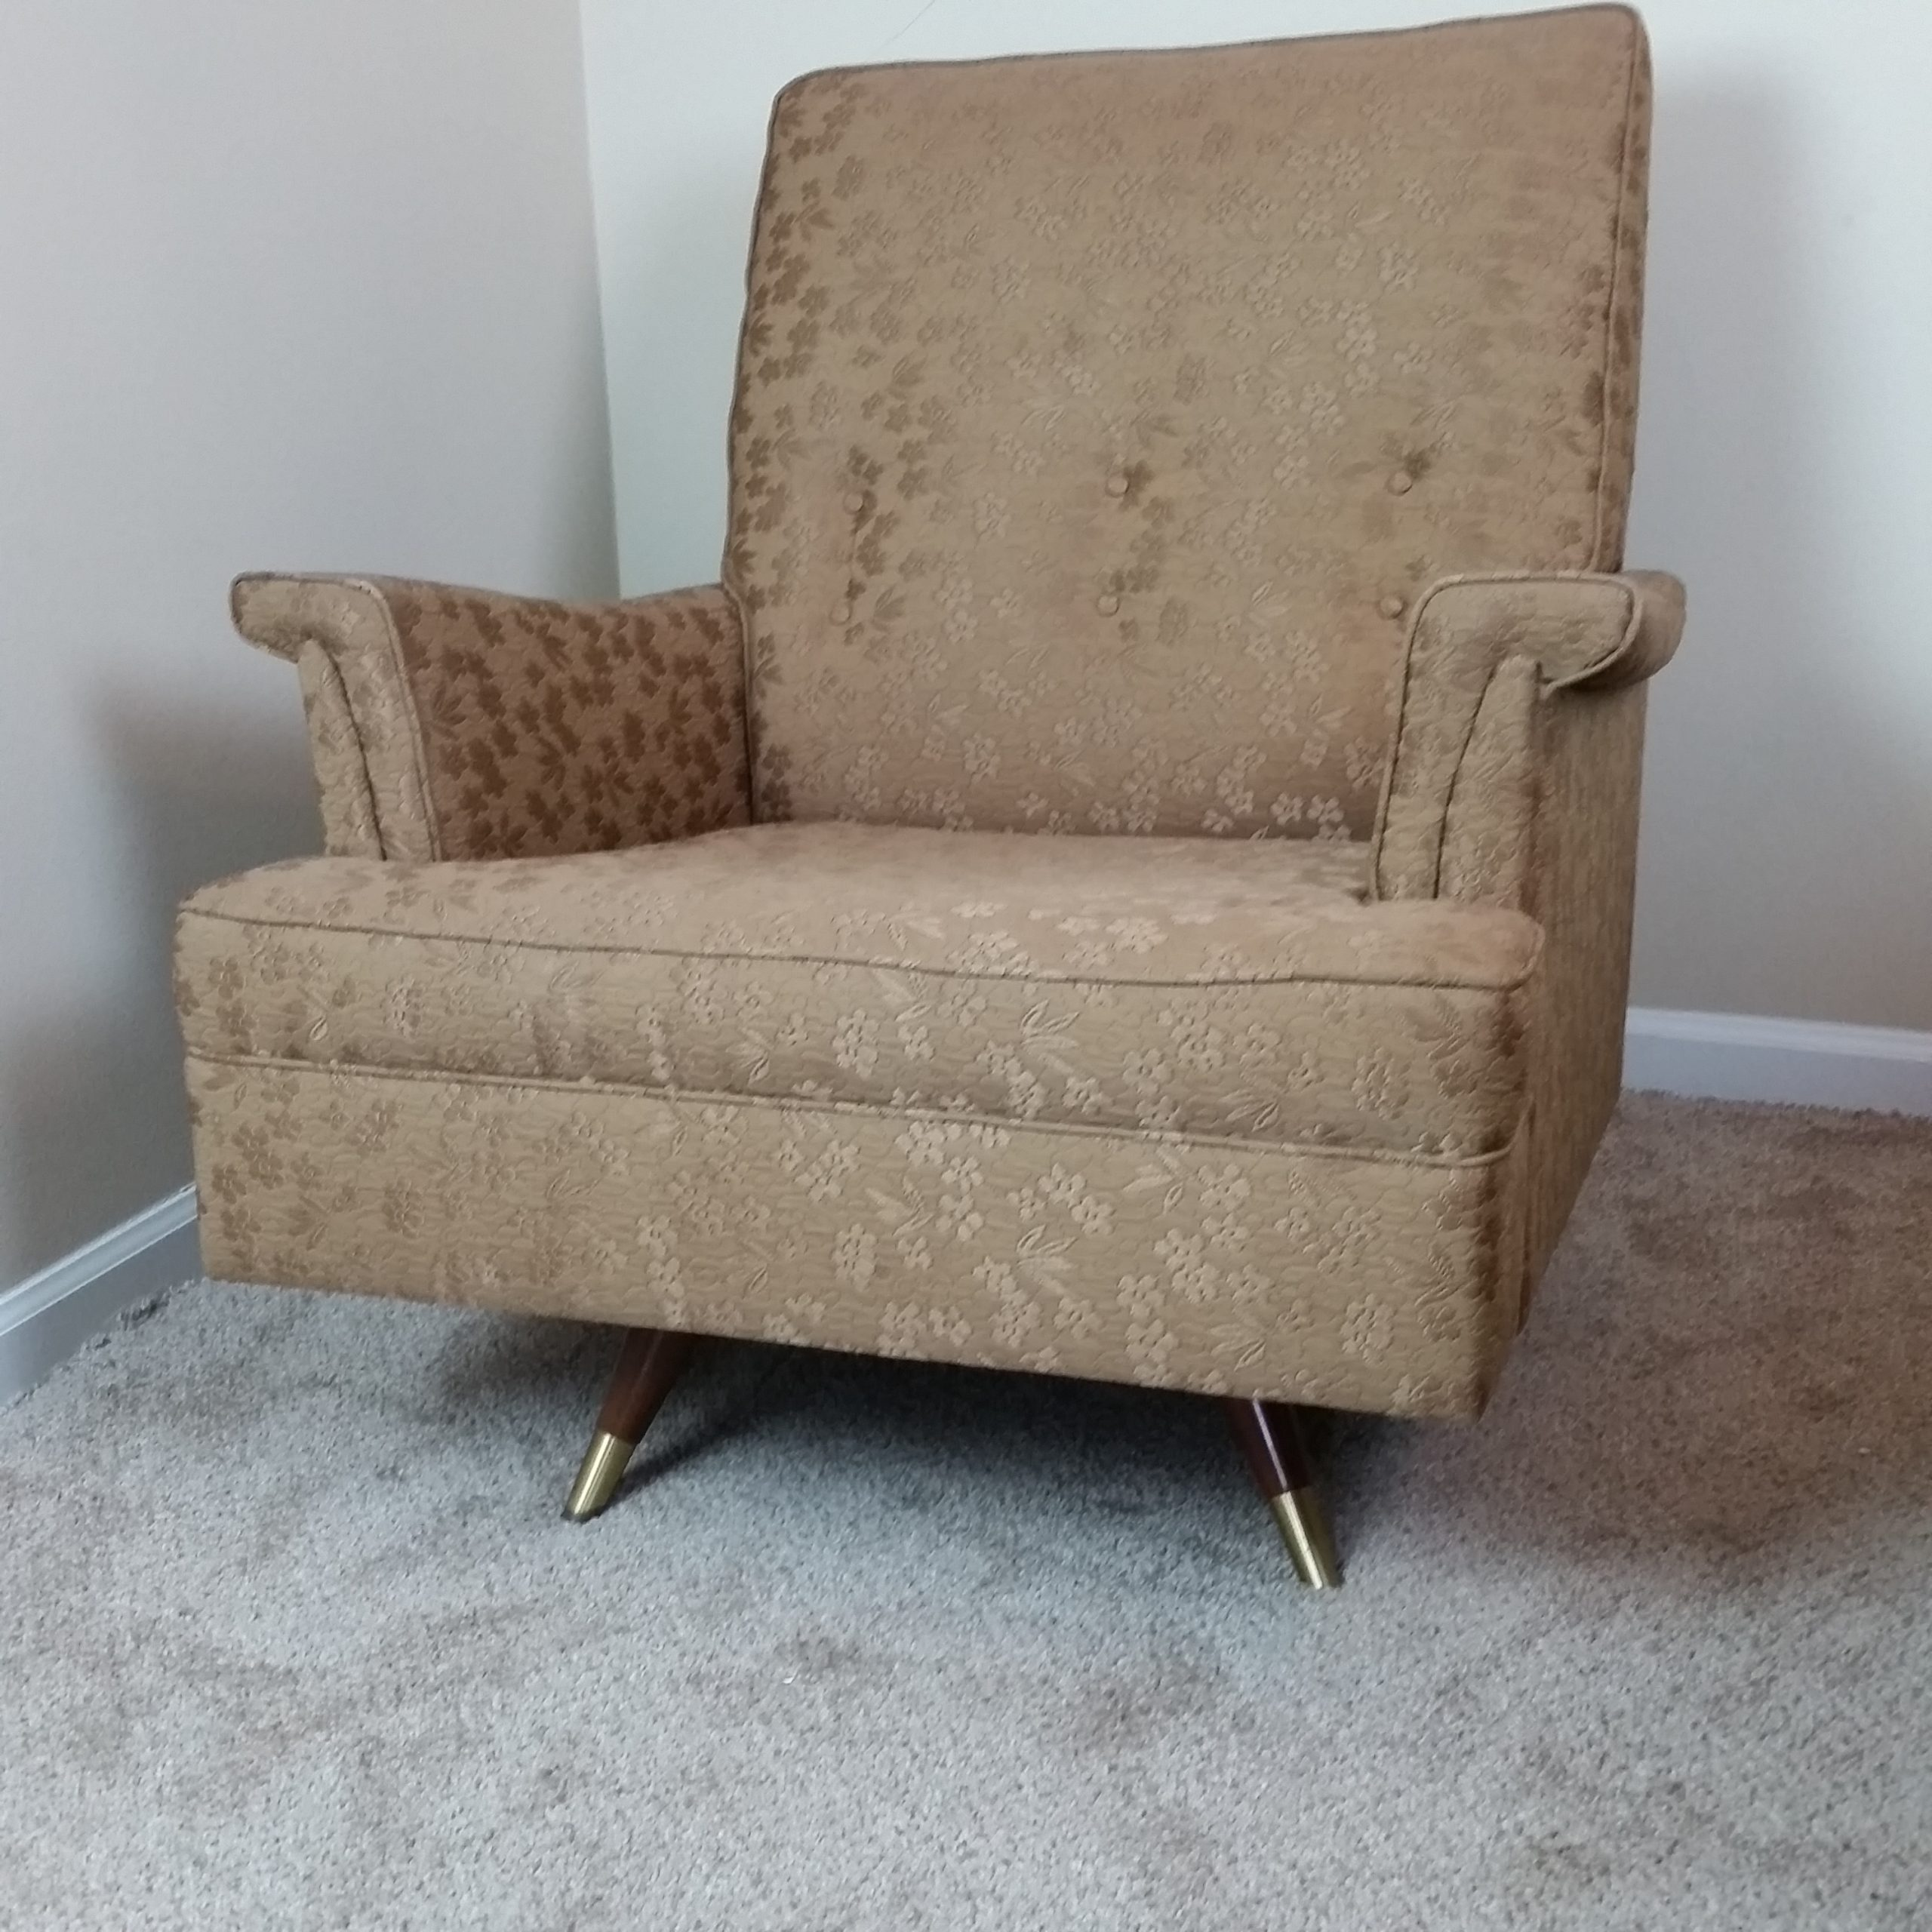 Image of: Sold Vintage Mid Century Modern Swivel Arm Chair Kroehler Mint Fabric Will Ship Read Description Laughing Owl Treasures